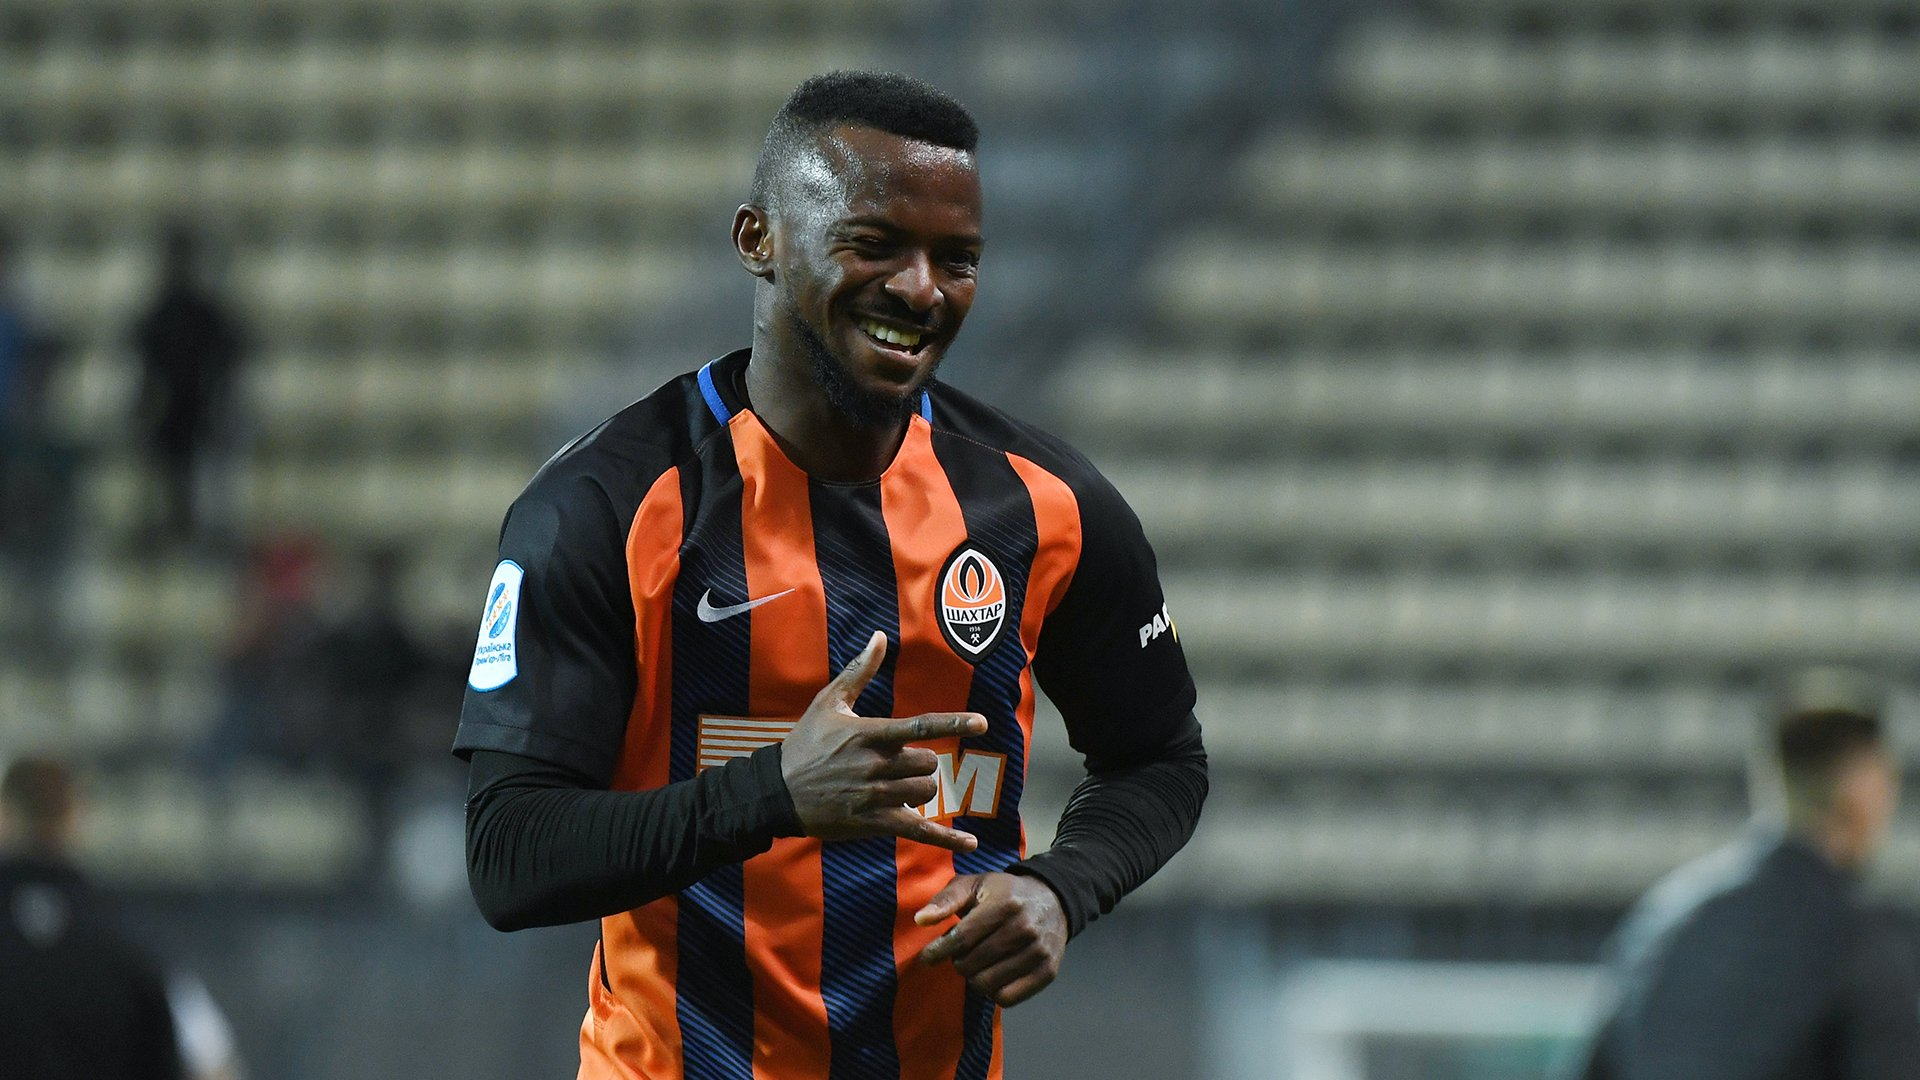 Kayode Eyes Ukrainian Cup Title With Shakhtar Donetsk